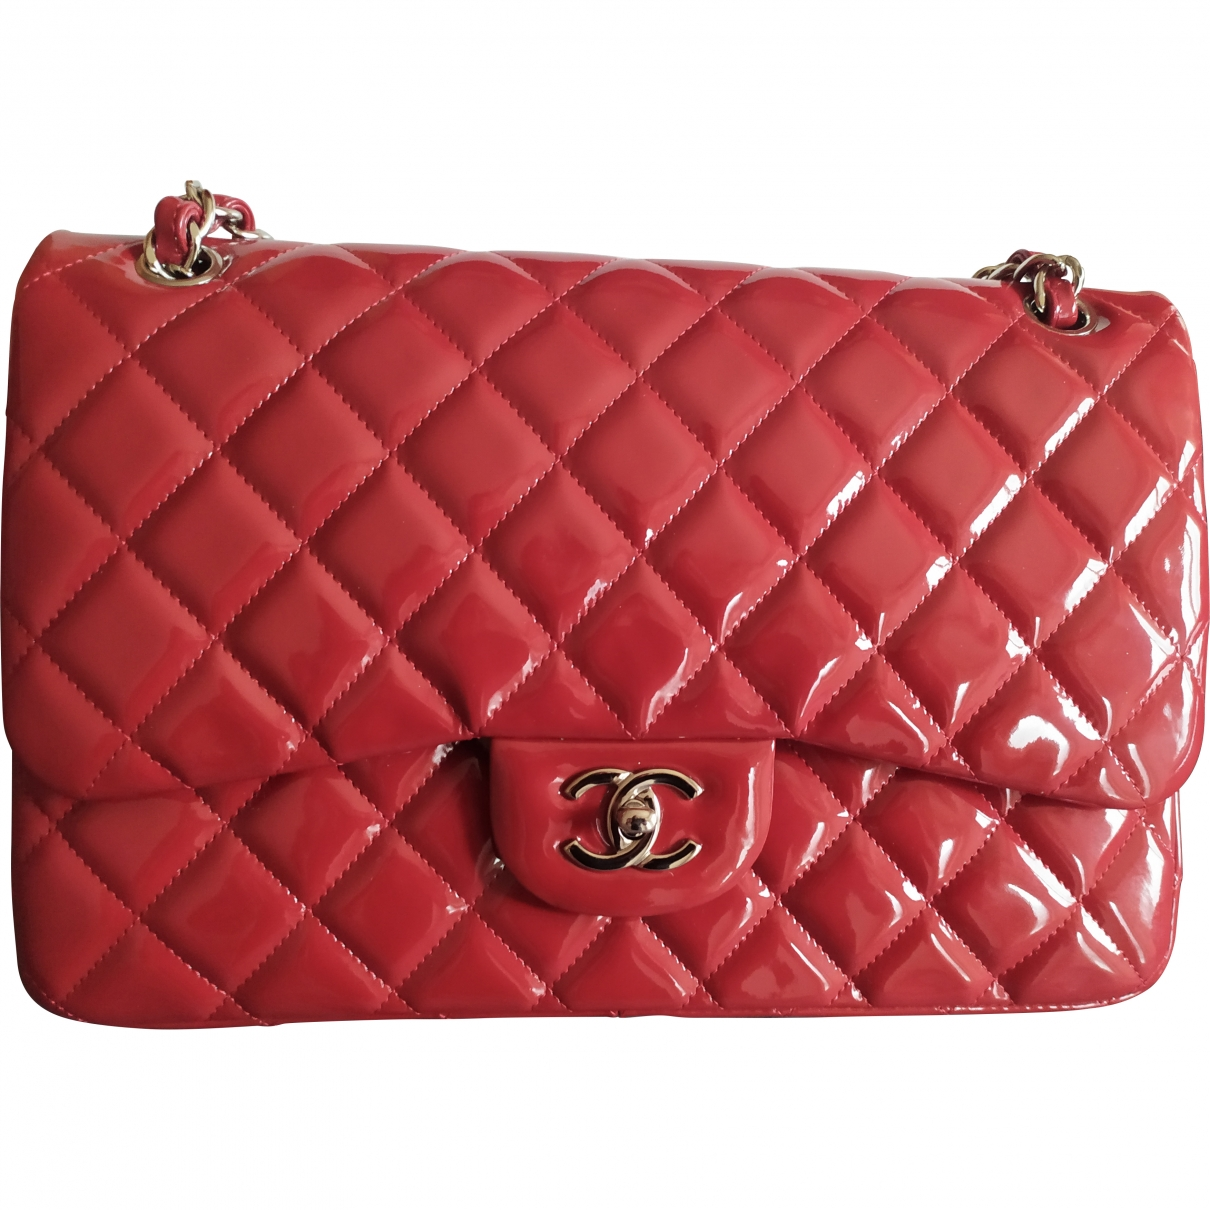 Chanel Timeless/Classique Red Patent leather handbag for Women \N